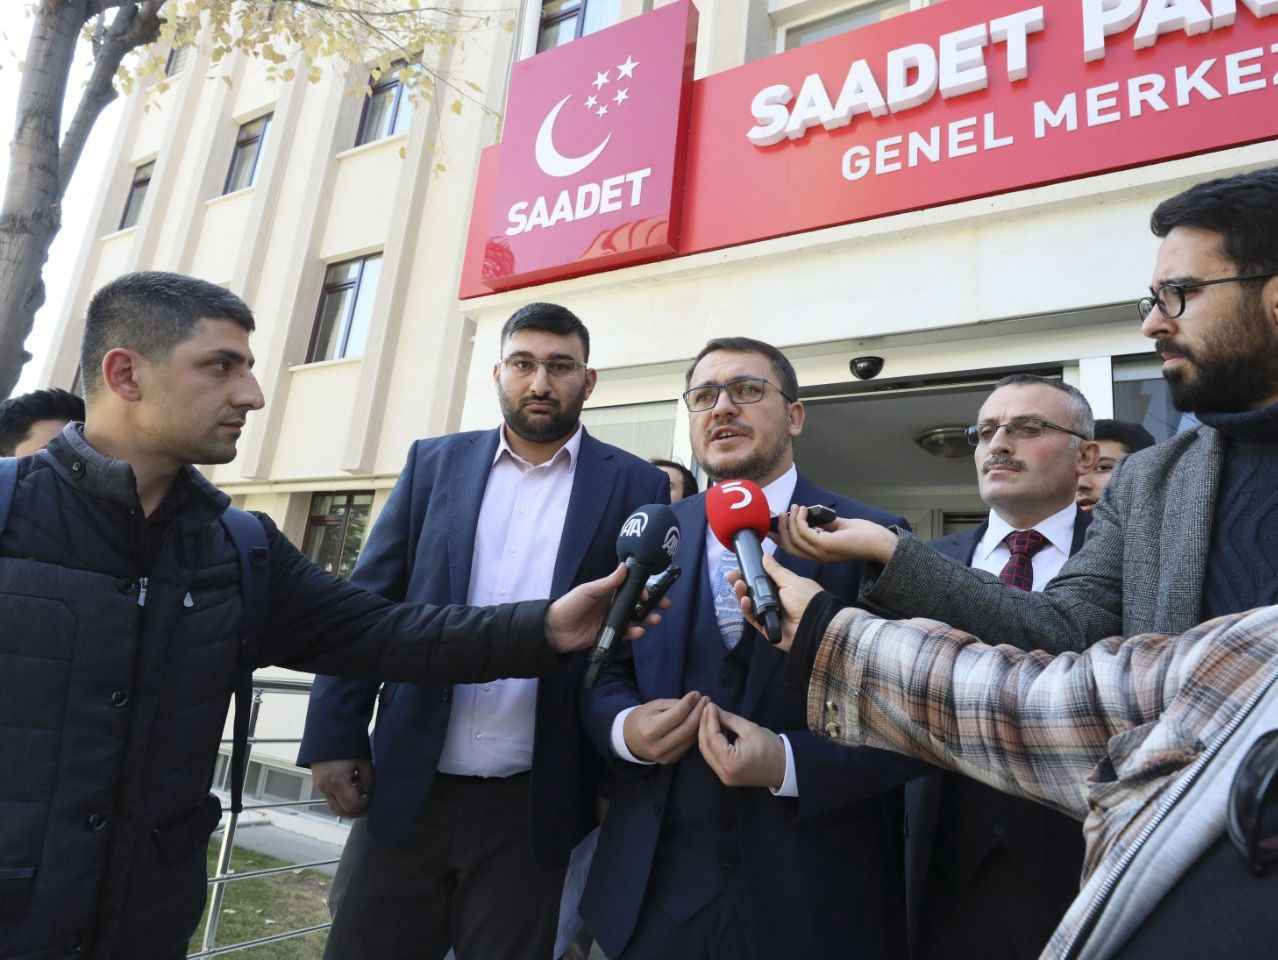 Saadet Party asked for 3 months